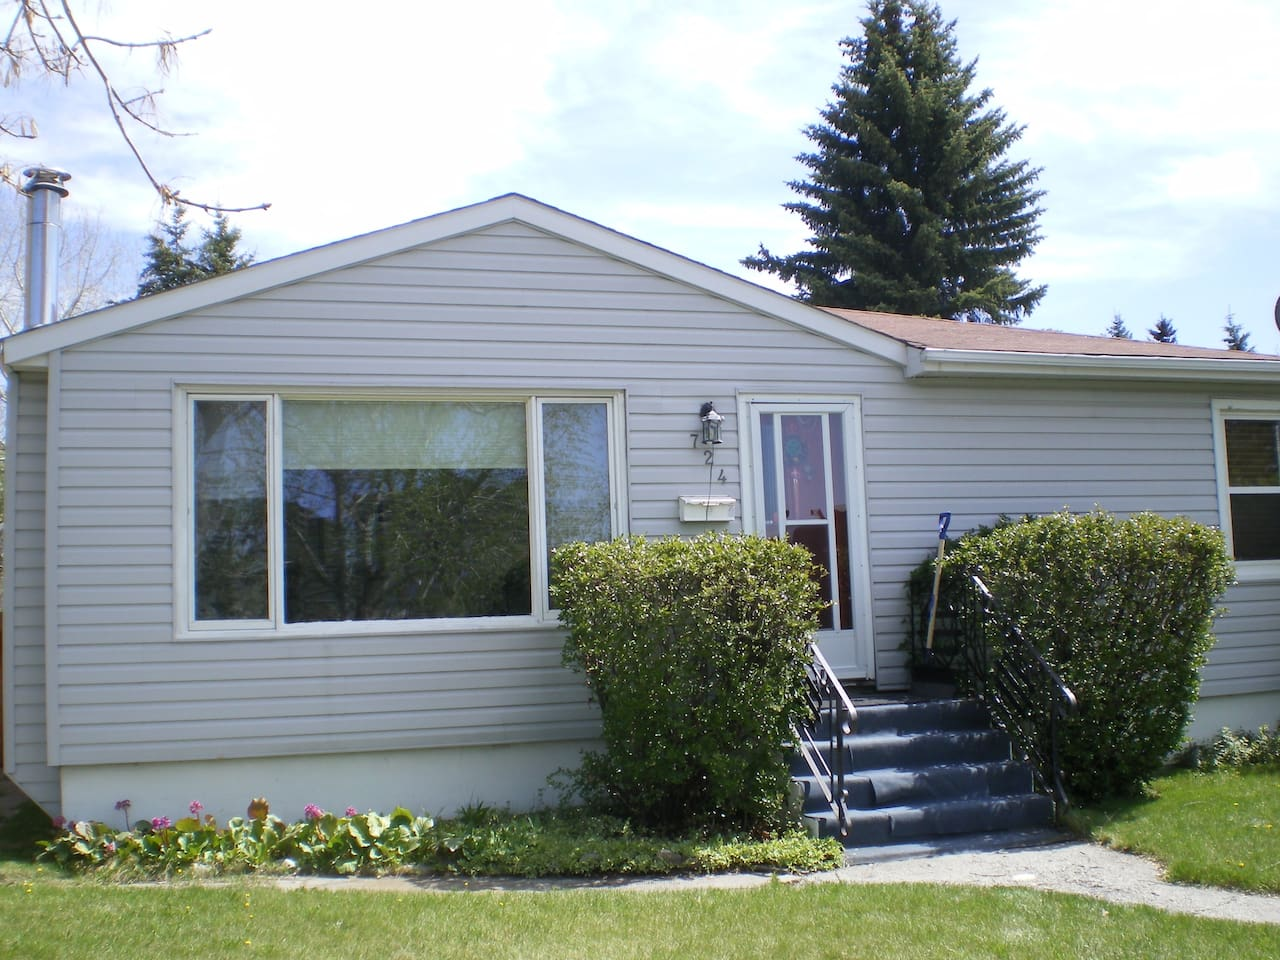 Home Away from Home - Bungalow in quiet neighbourhood of Parkdale